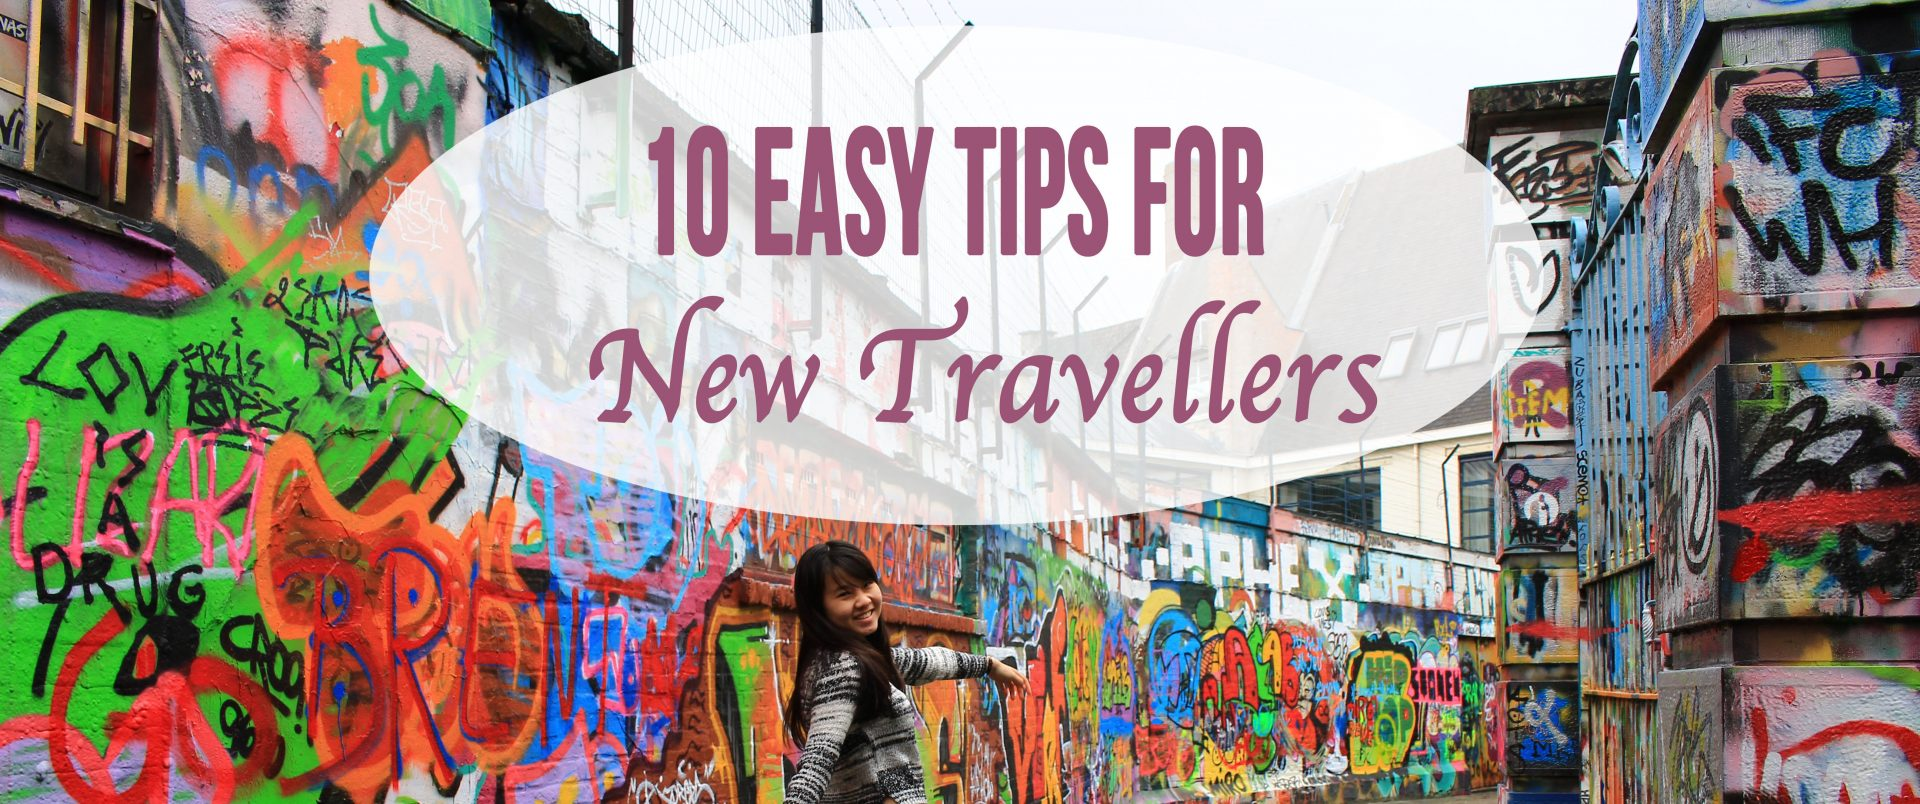 10 easy tips for new travellers